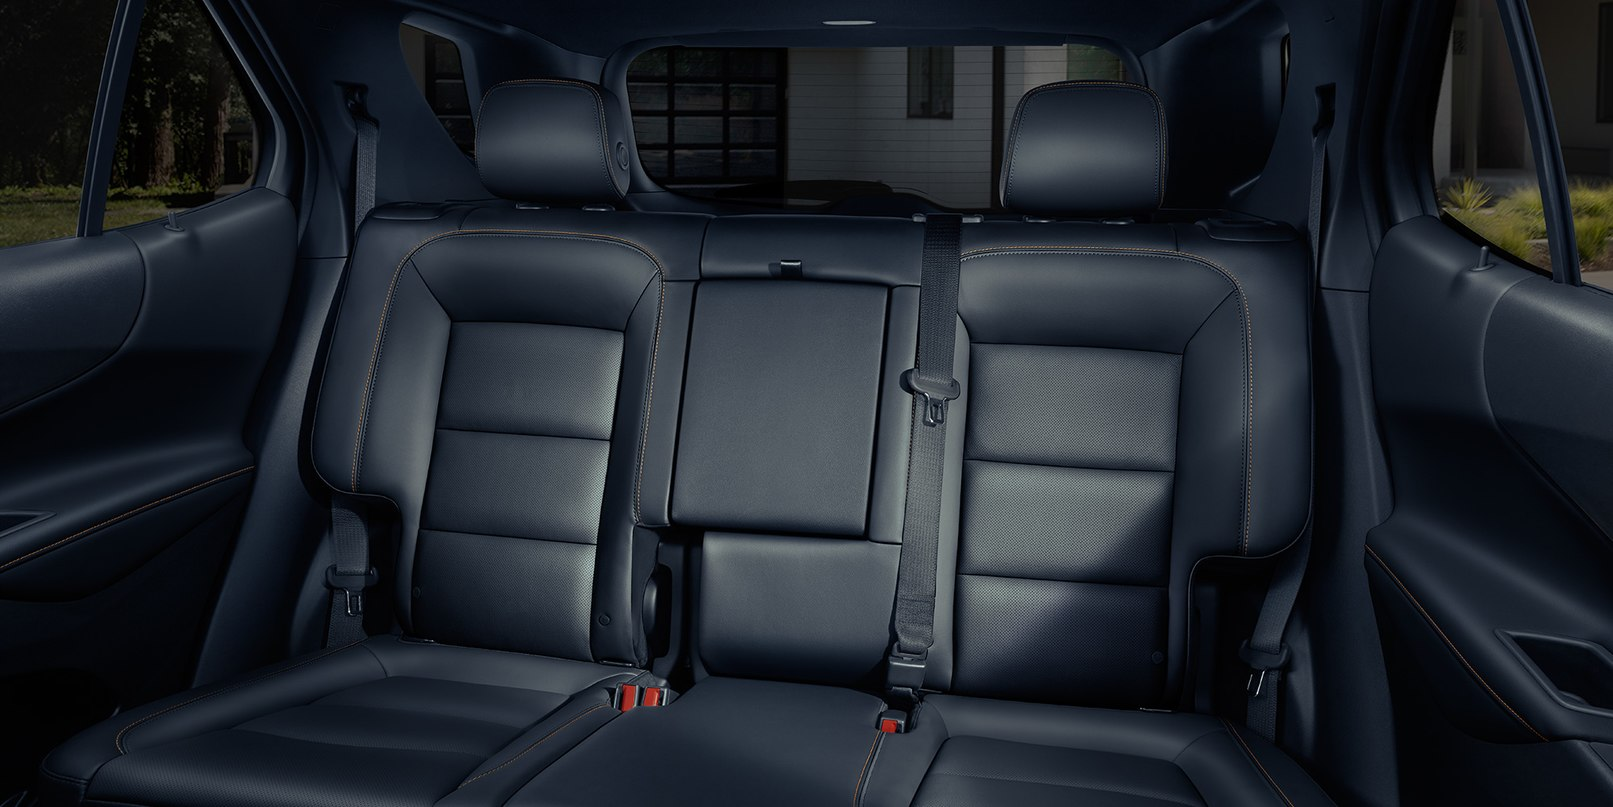 Luxurious Seating Options in the 2019 Equinox